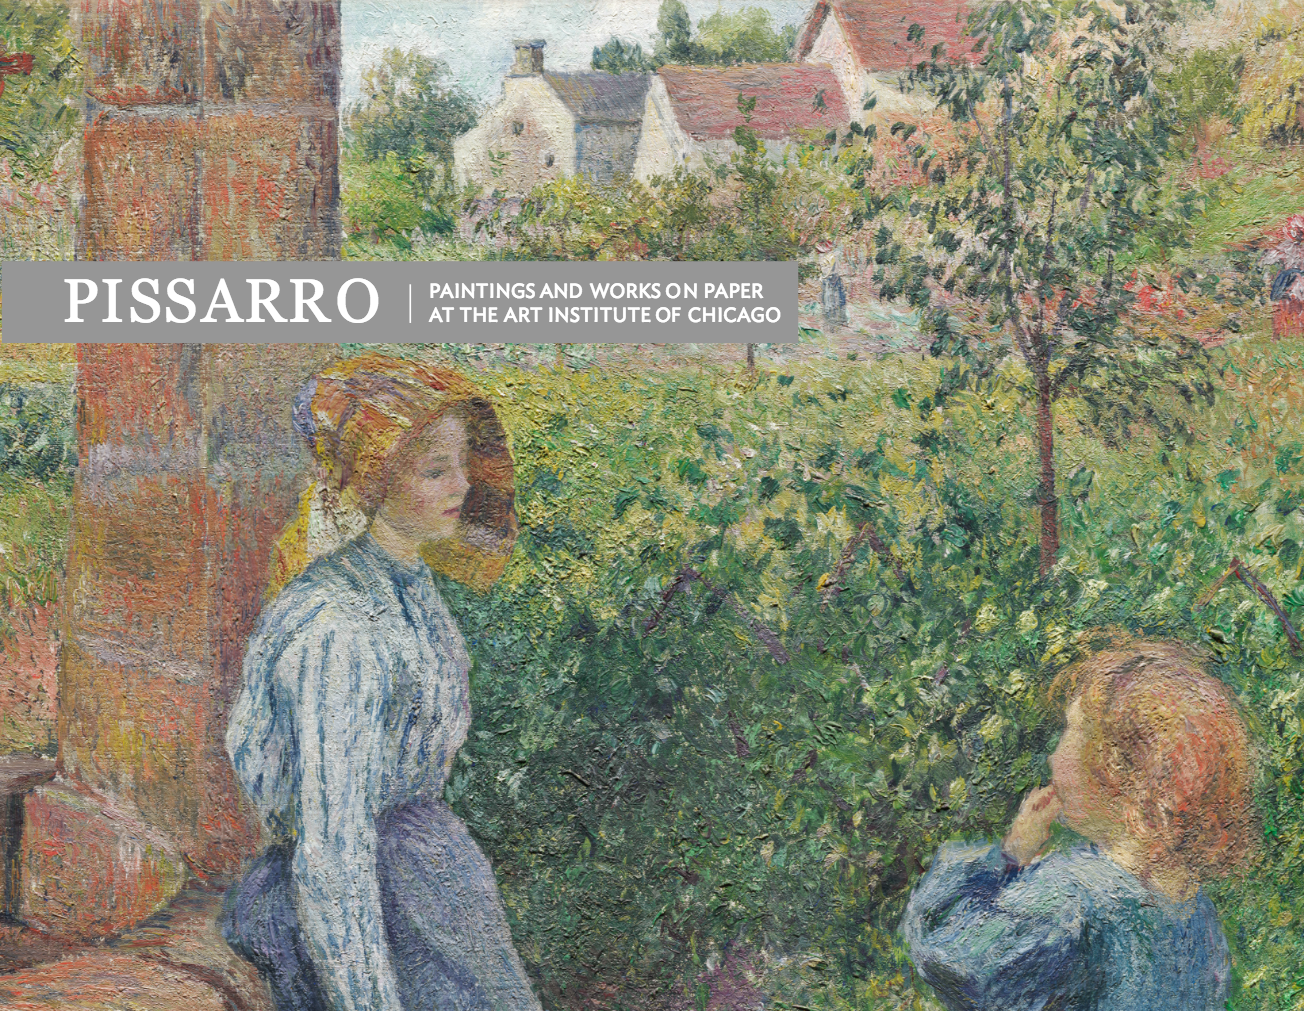 Pissarro Paintings and Works on Paper at the Art Institute of Chicago